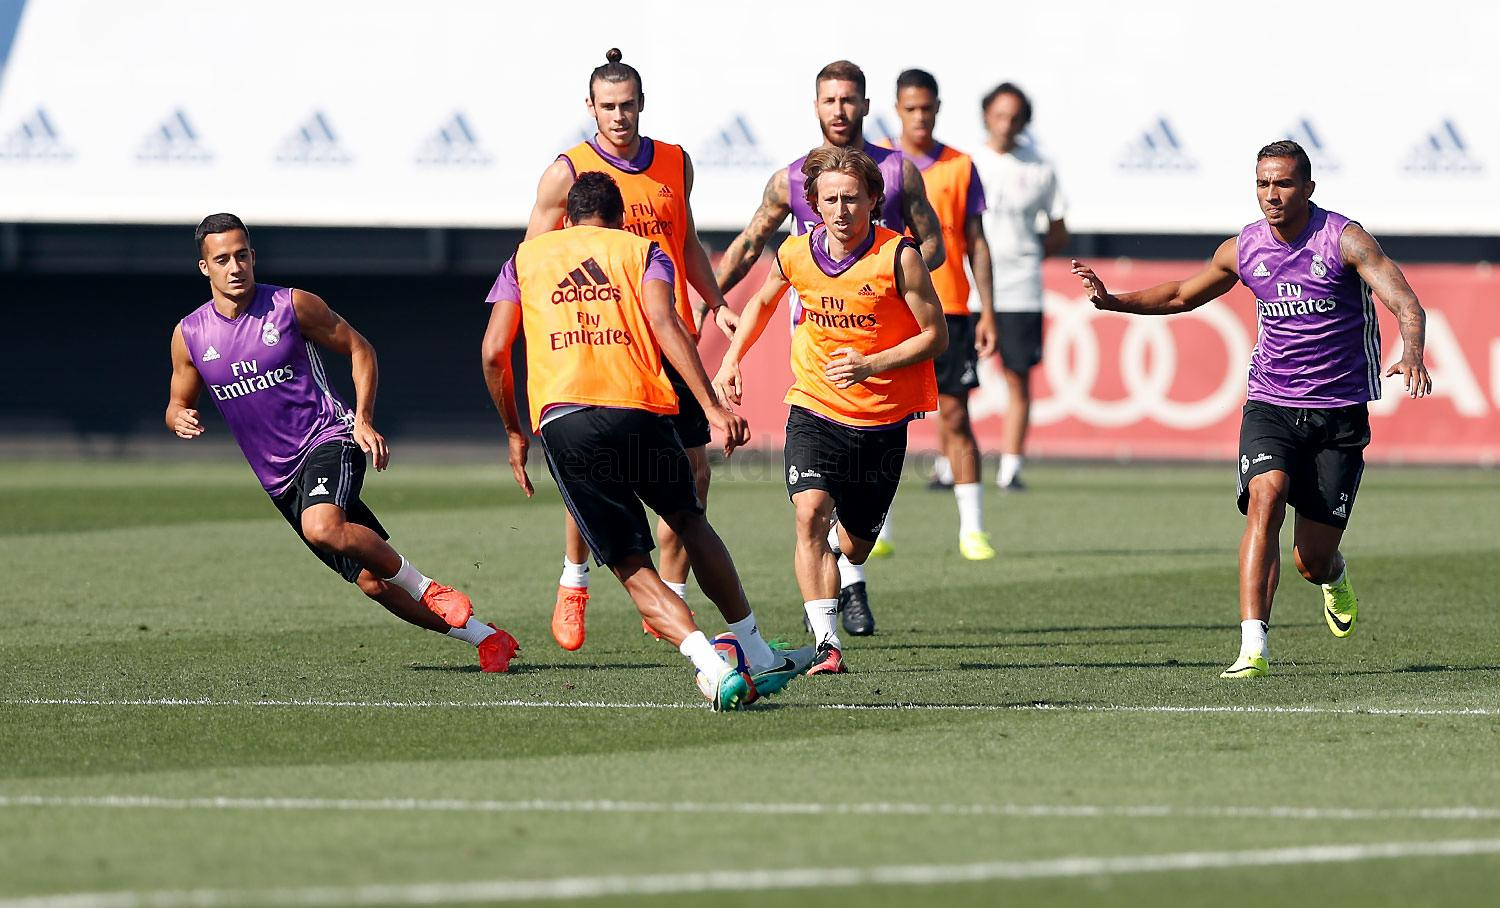 Real Madrid - Entrenamiento del Real Madrid - 08-09-2016